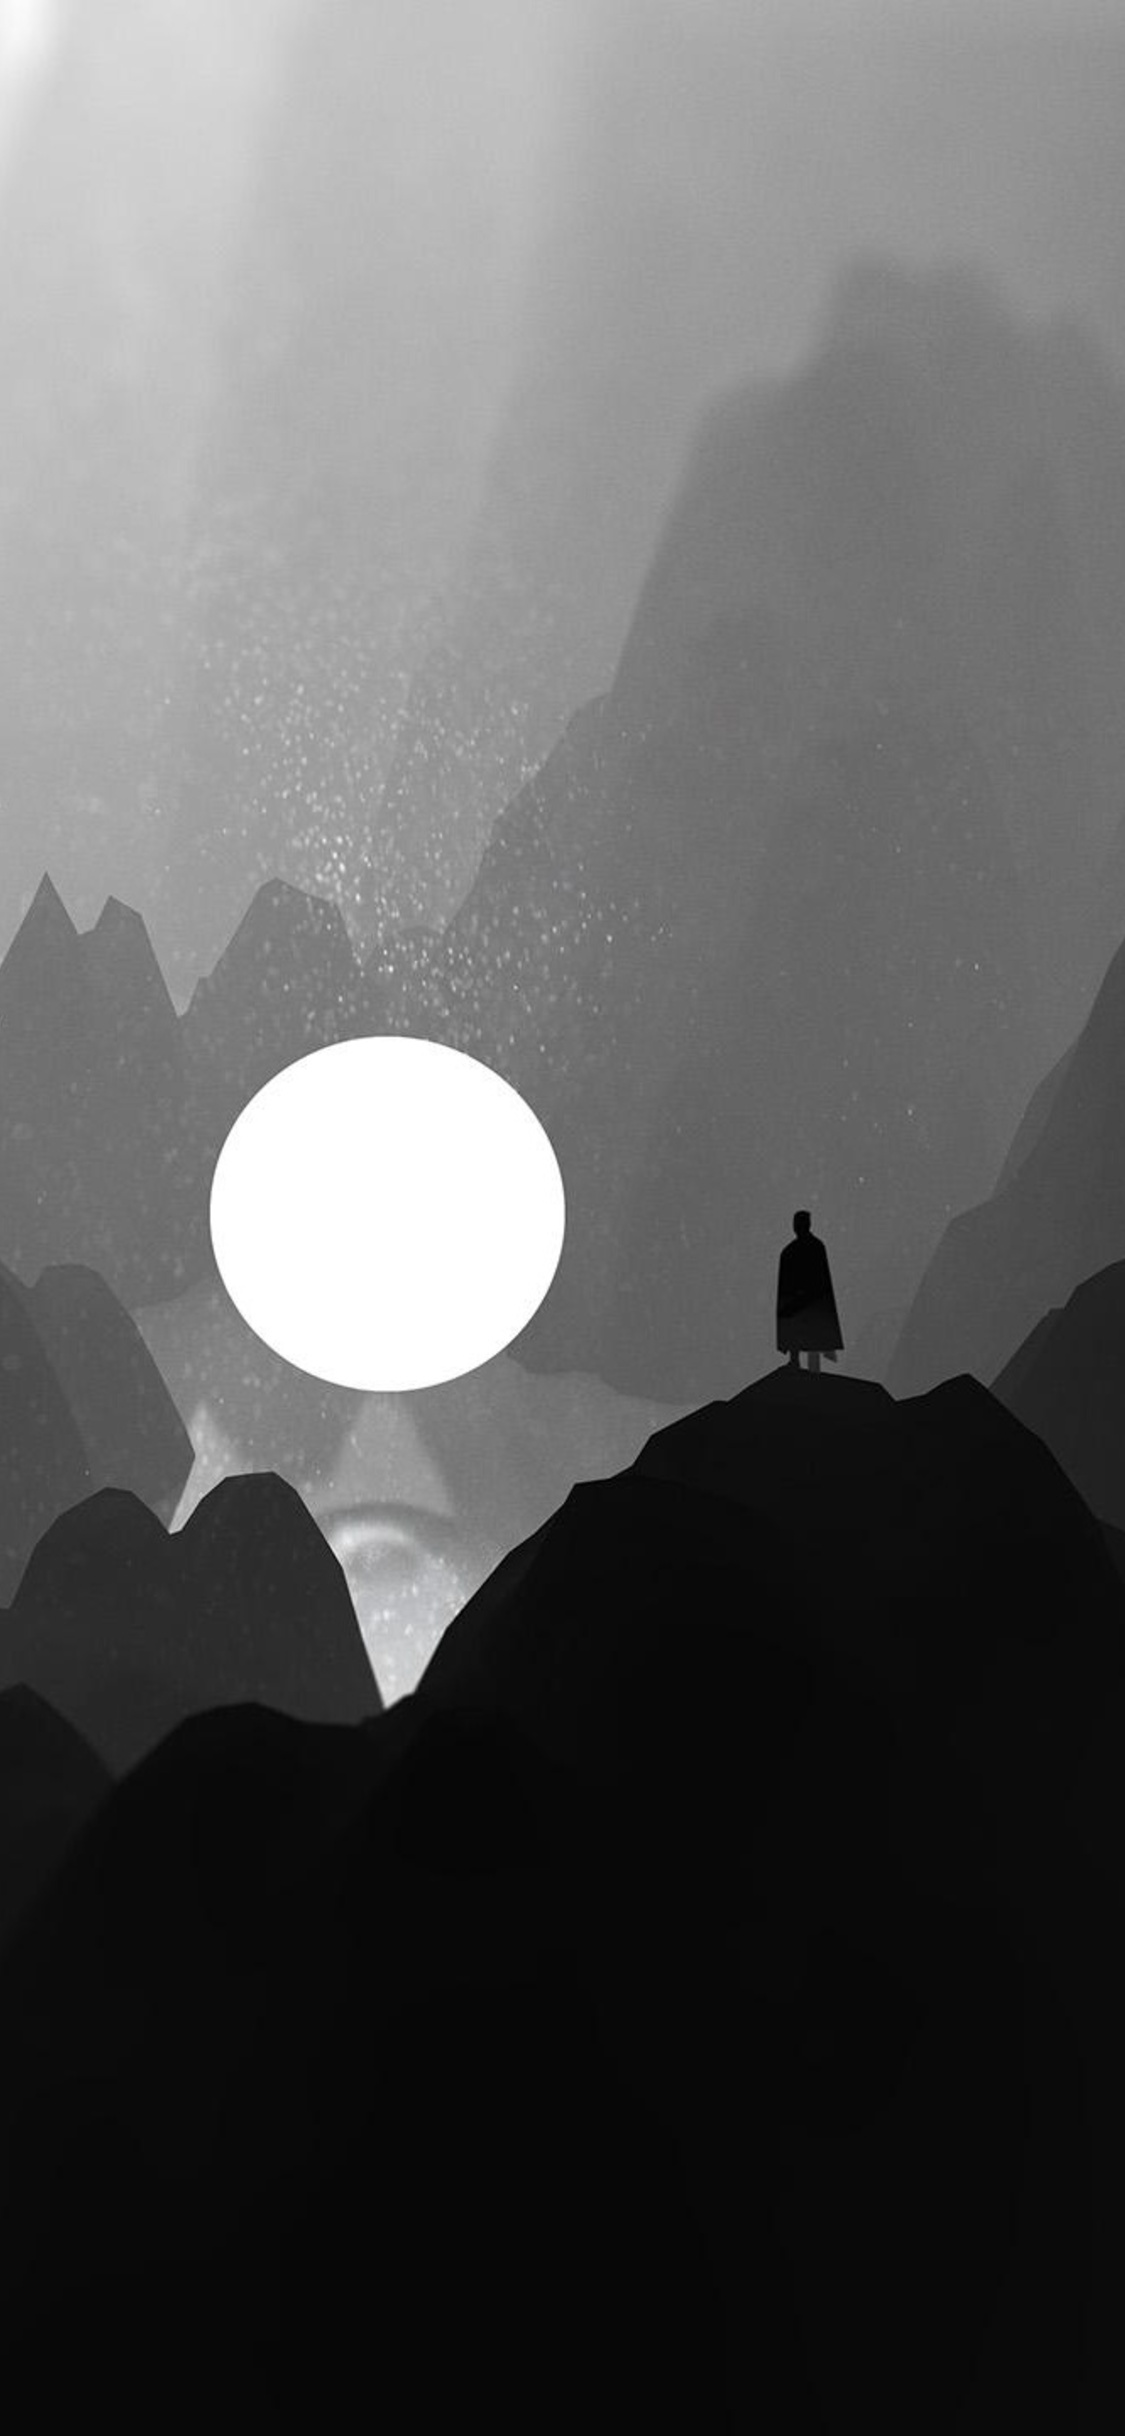 1125x2436 Black And White Moon Man Standing On Mountain Artwork